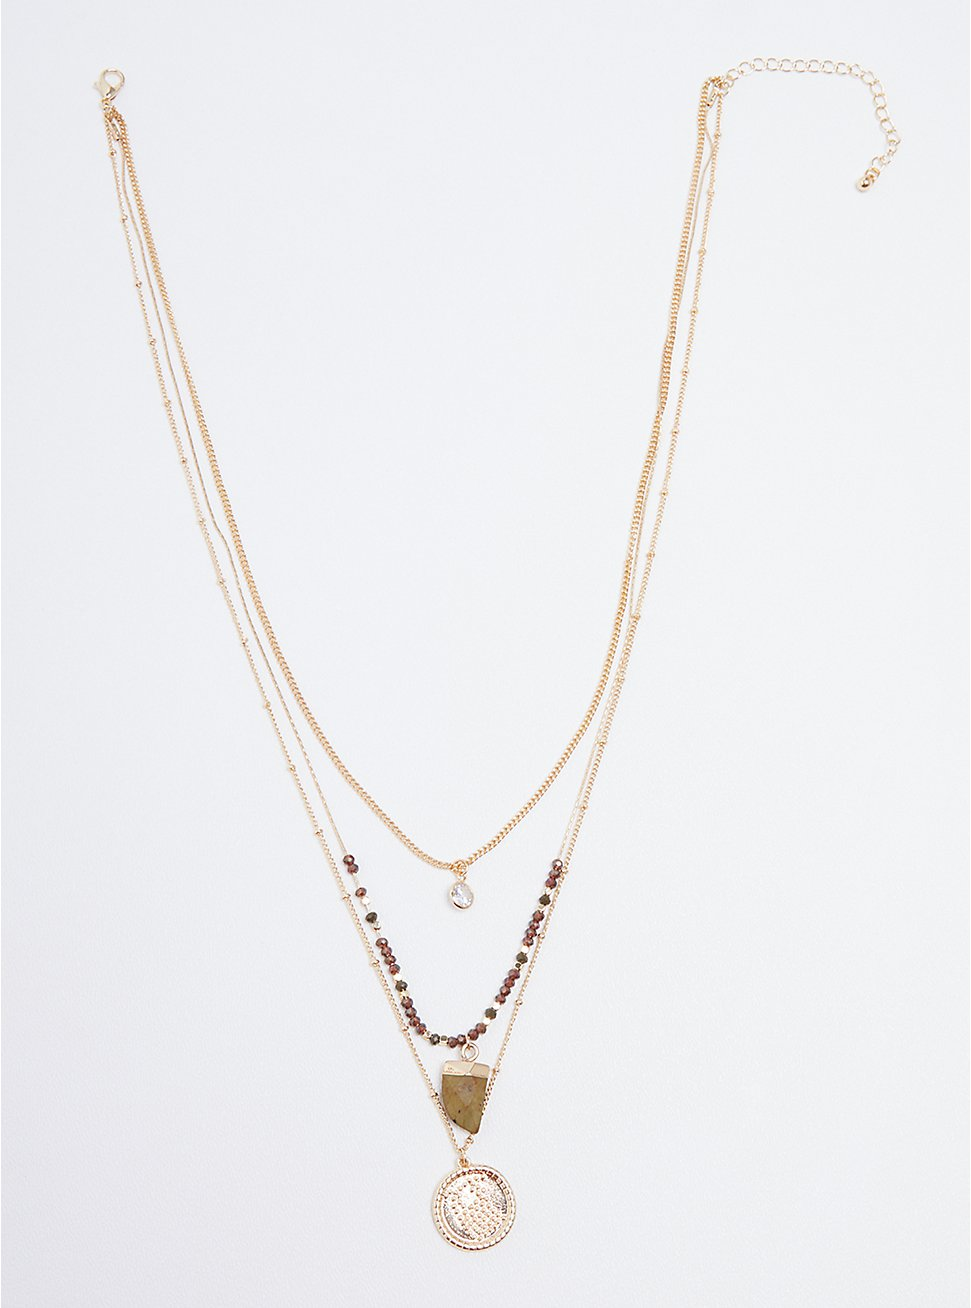 Faux Horn & Disc Layered Necklace - Gold Tone , , hi-res